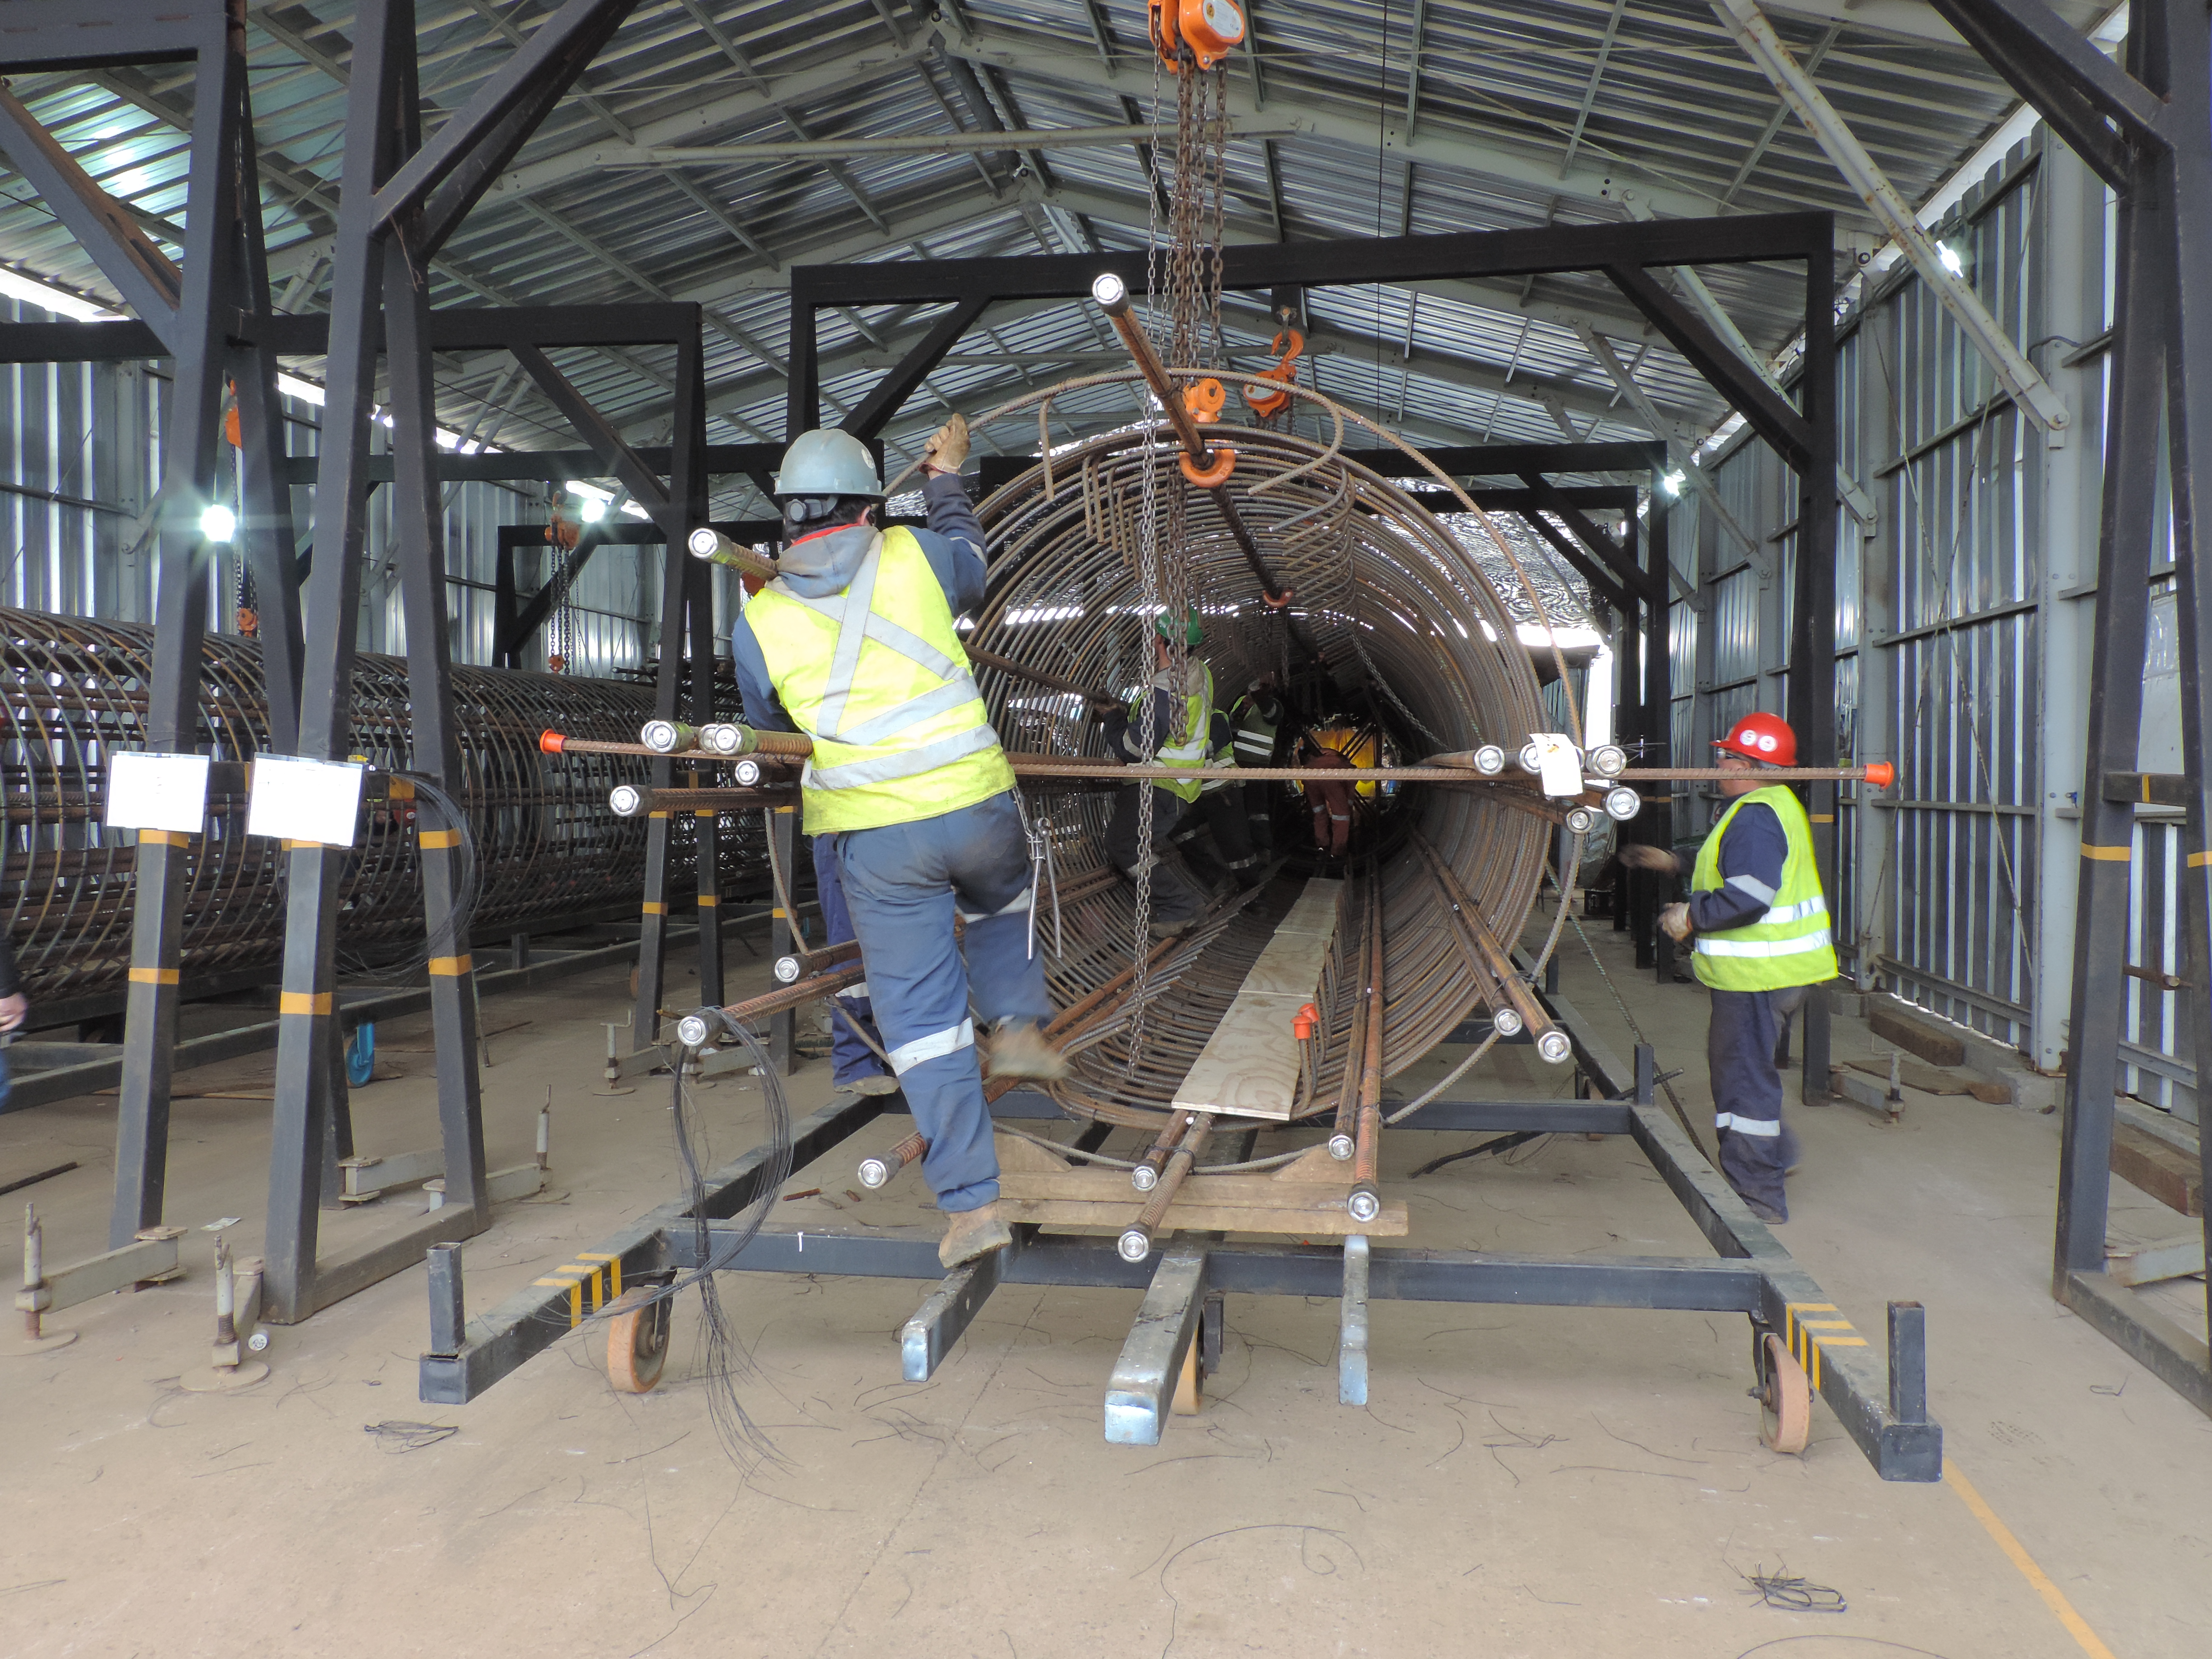 Trevi Chile Spa: assembly of the reinforcement cages and welding of steel casings | Trevi 3